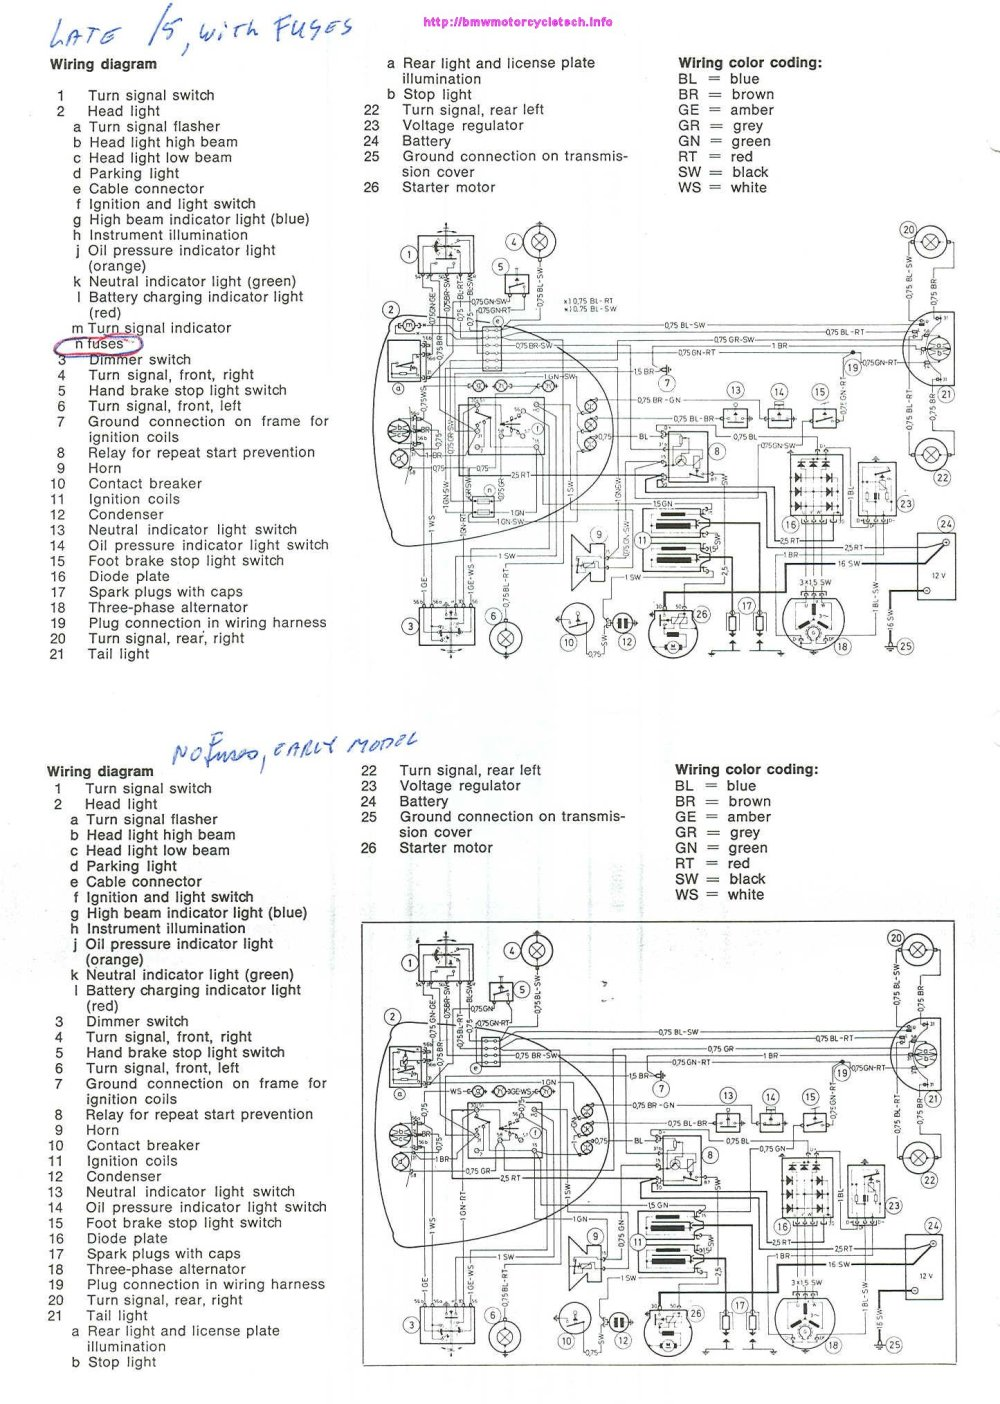 medium resolution of early model had no fuses set your browser to expand the image as needed it will be cleanly displayed see 38e schematic diagram